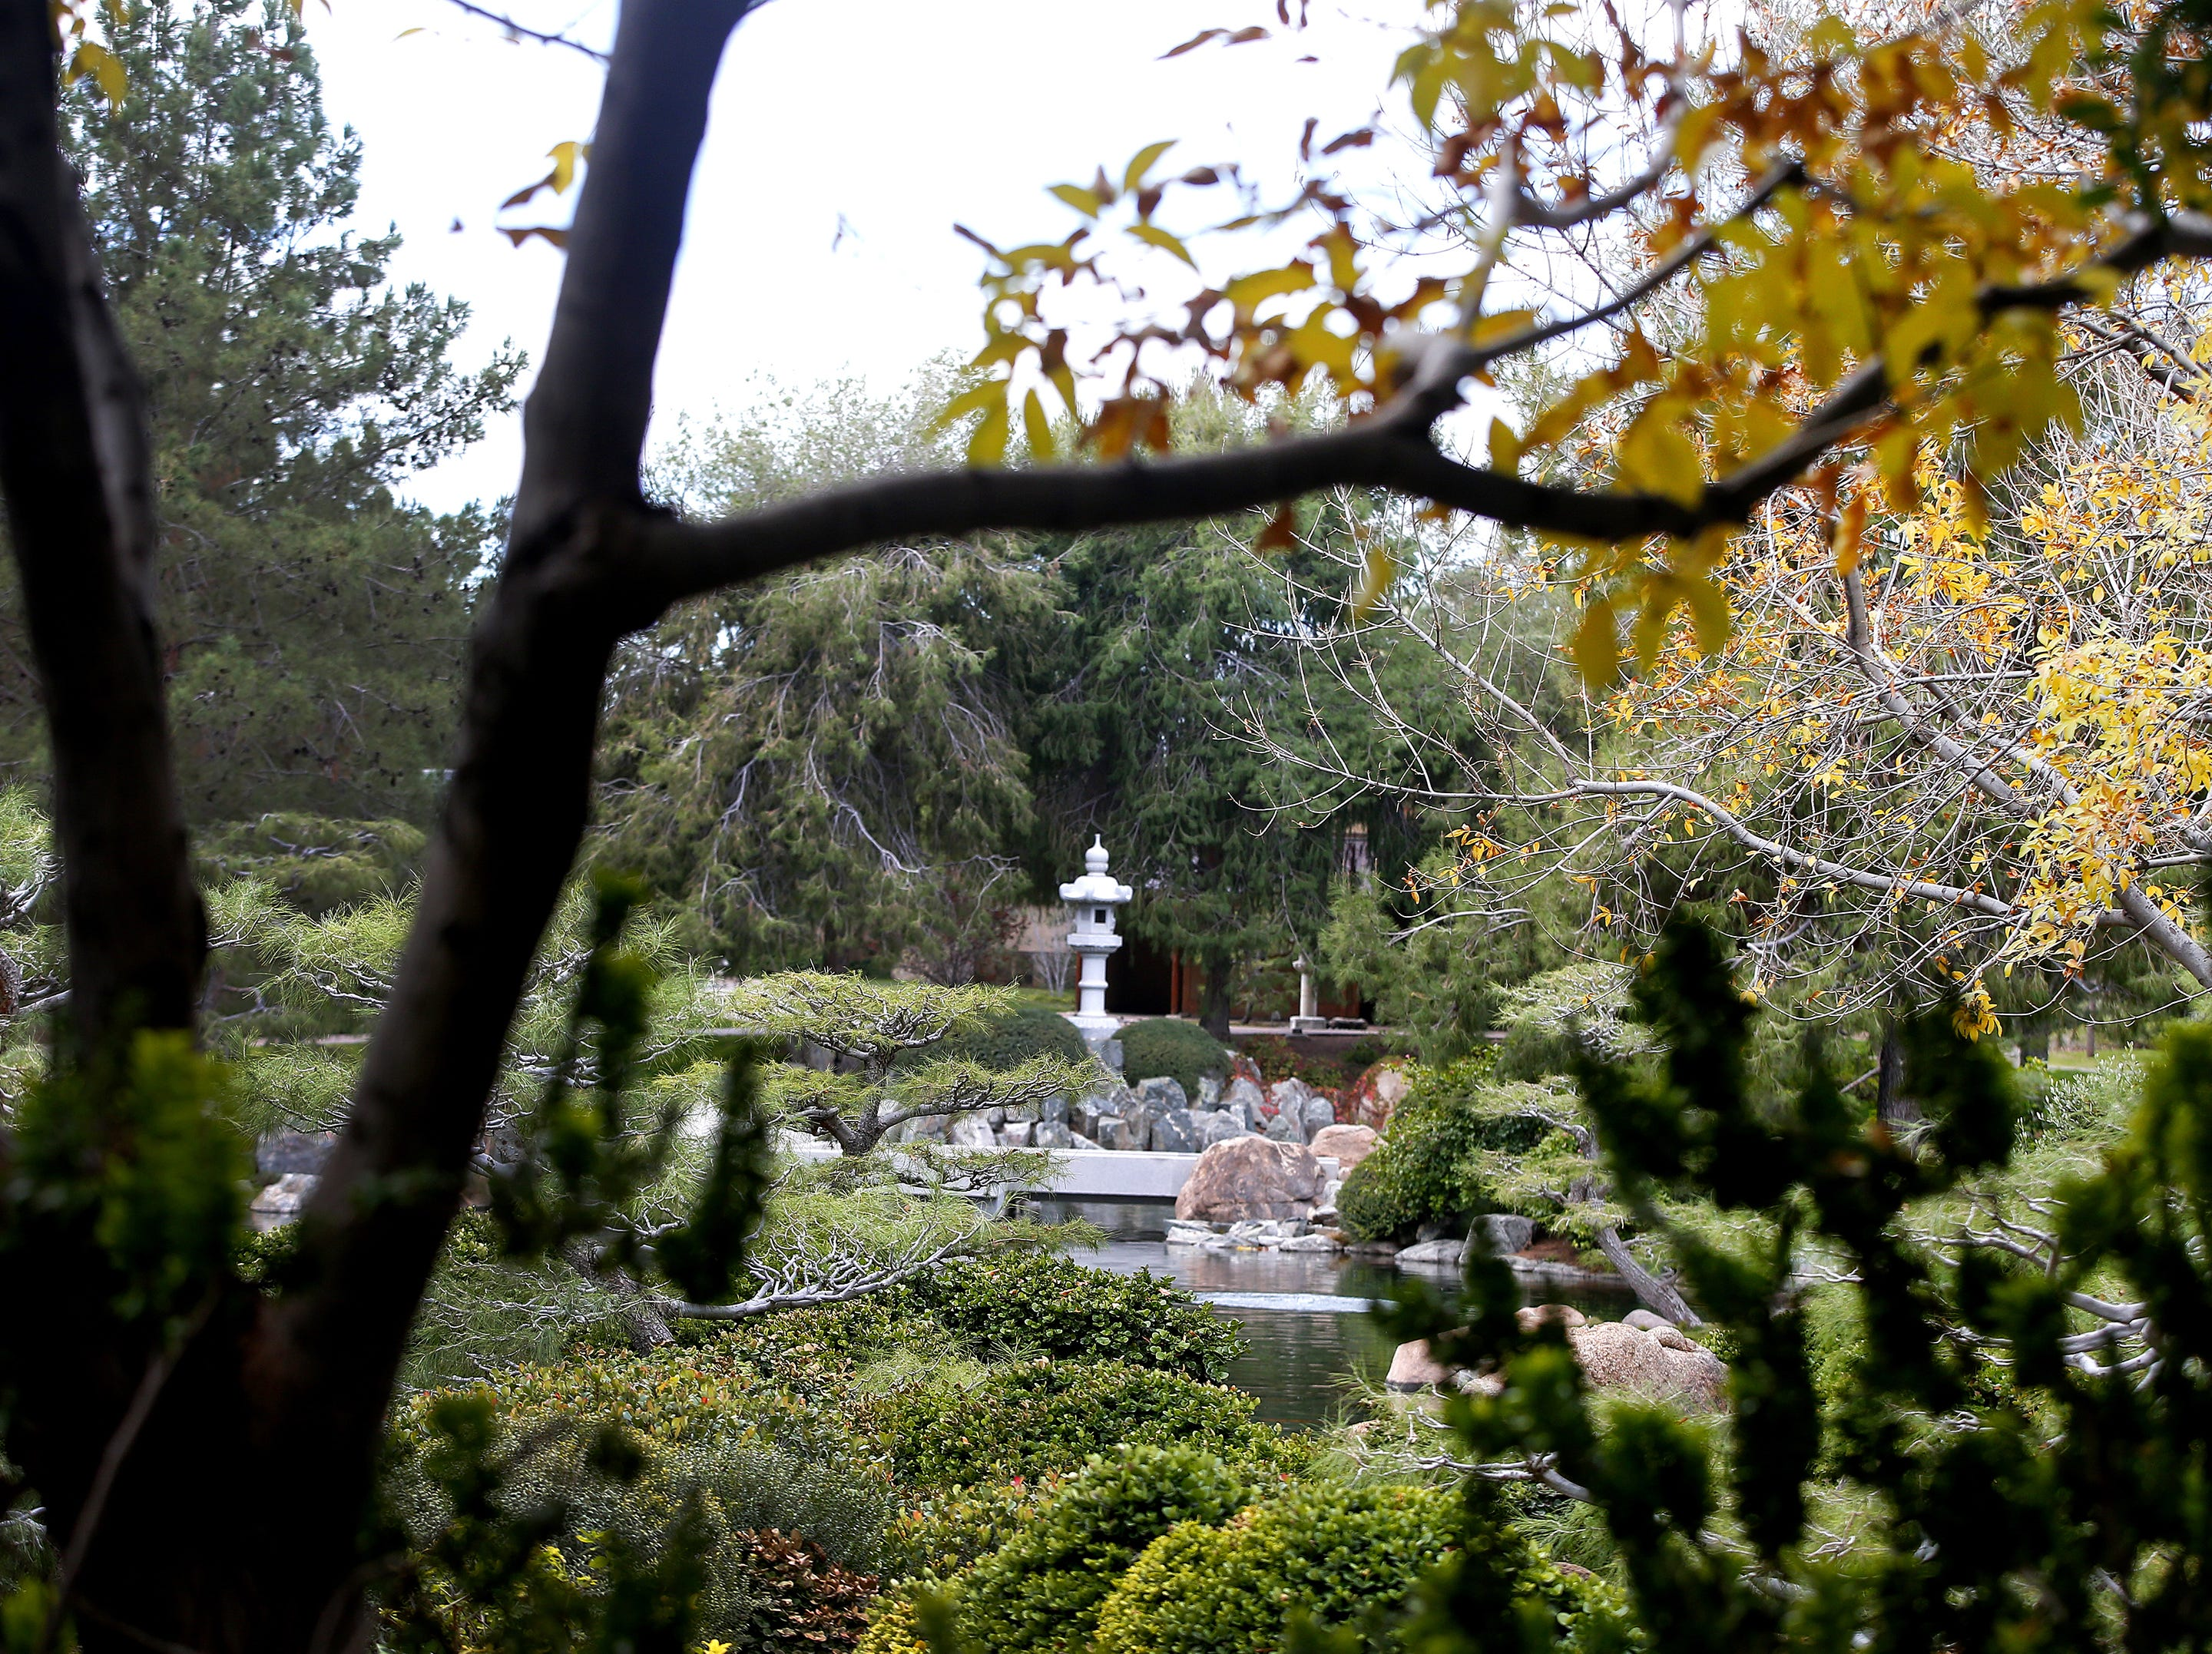 VISIT THE JAPANESE FRIENDSHIP GARDEN: The Japanese Friendship Garden in downtown Phoenix provides a lush garden with zigzagging paths for a moment of quiet in a busy city.